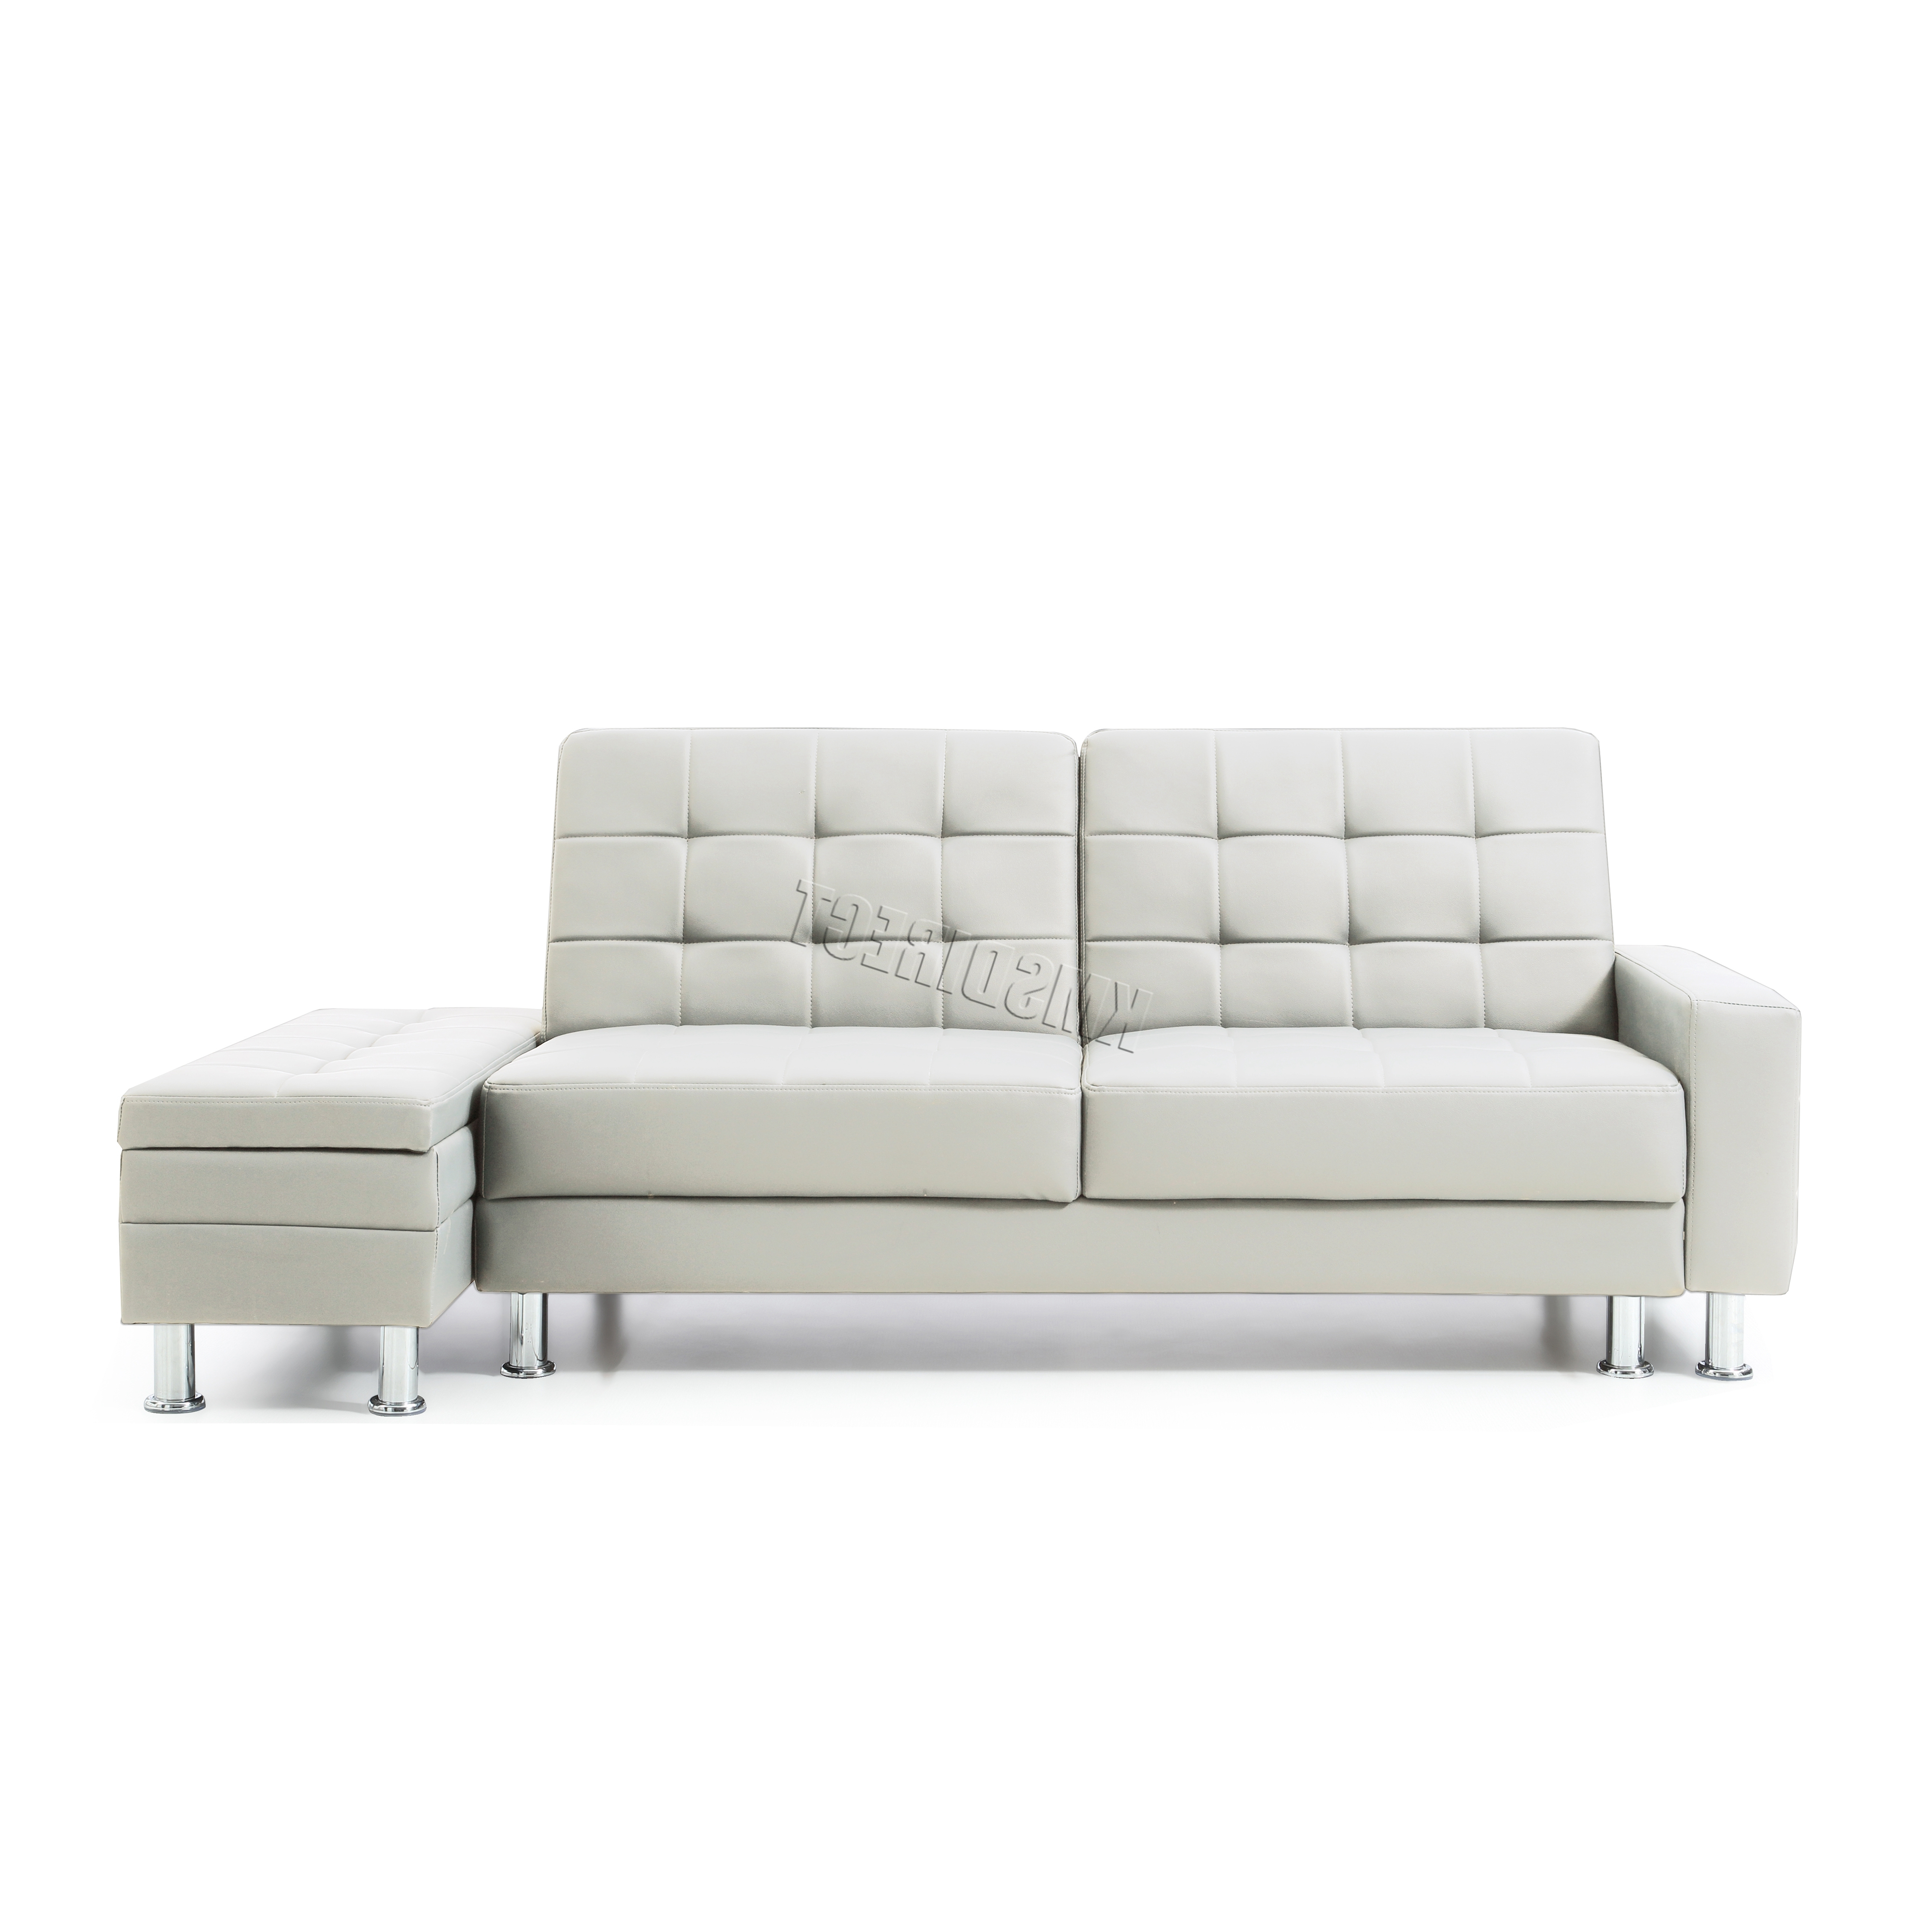 Taren Reversible Sofa/chaise Sleeper Sectionals With Storage Ottoman Inside Famous Sofa Bed With Ottoman – Sofa Ideas (View 16 of 20)